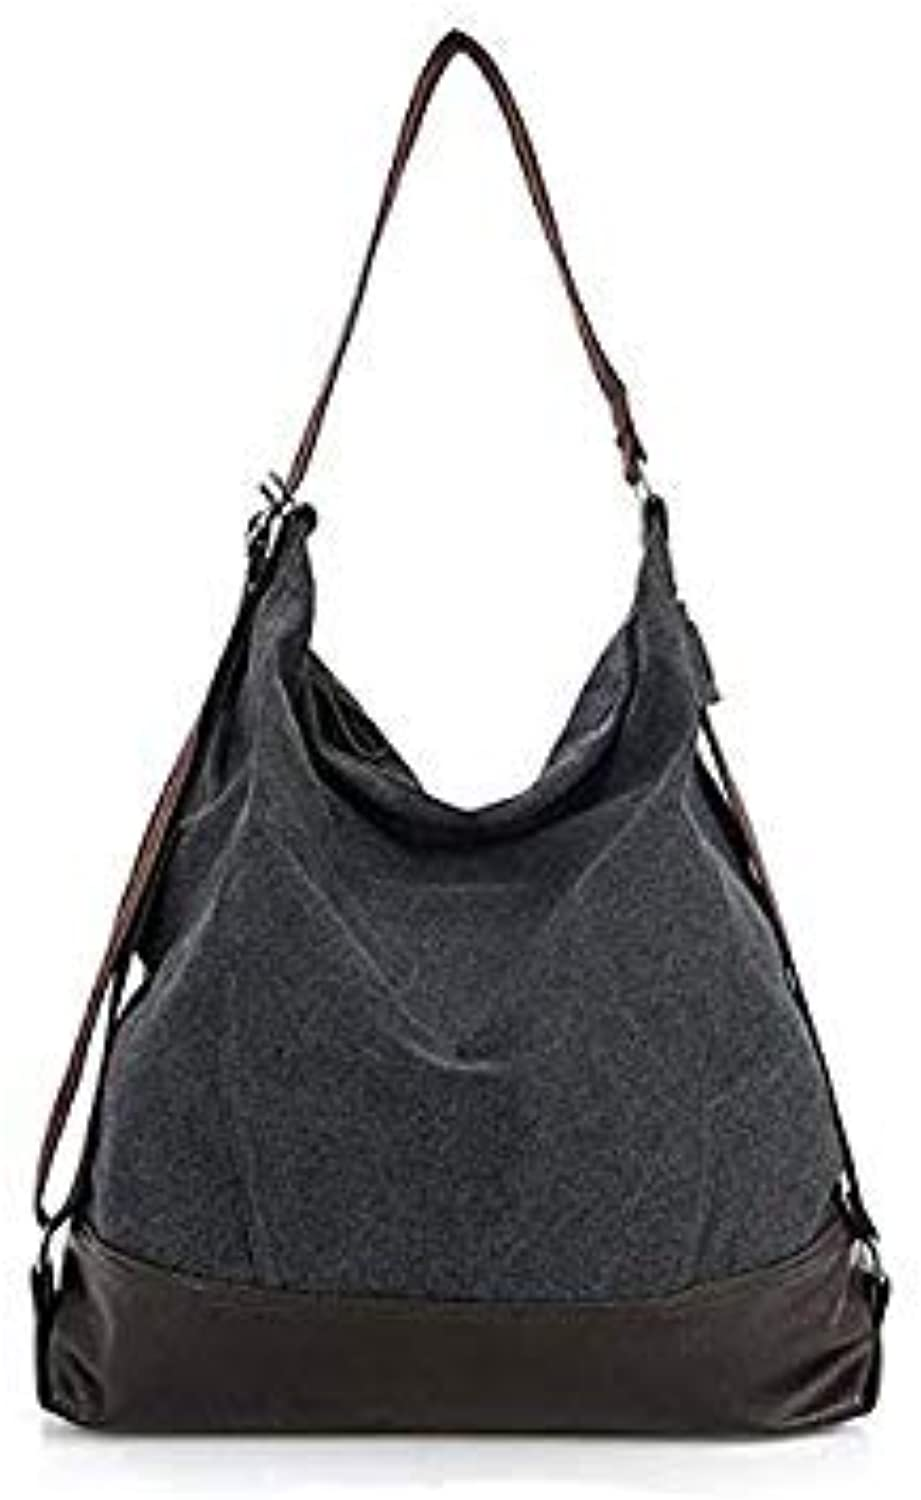 Bloomerang Big Shoulder Bags Fashion Patchwork Women Canvas and Leather Handbags Canvas Tote Bag for Ladies sac a Main Bolsa Feminina color Black